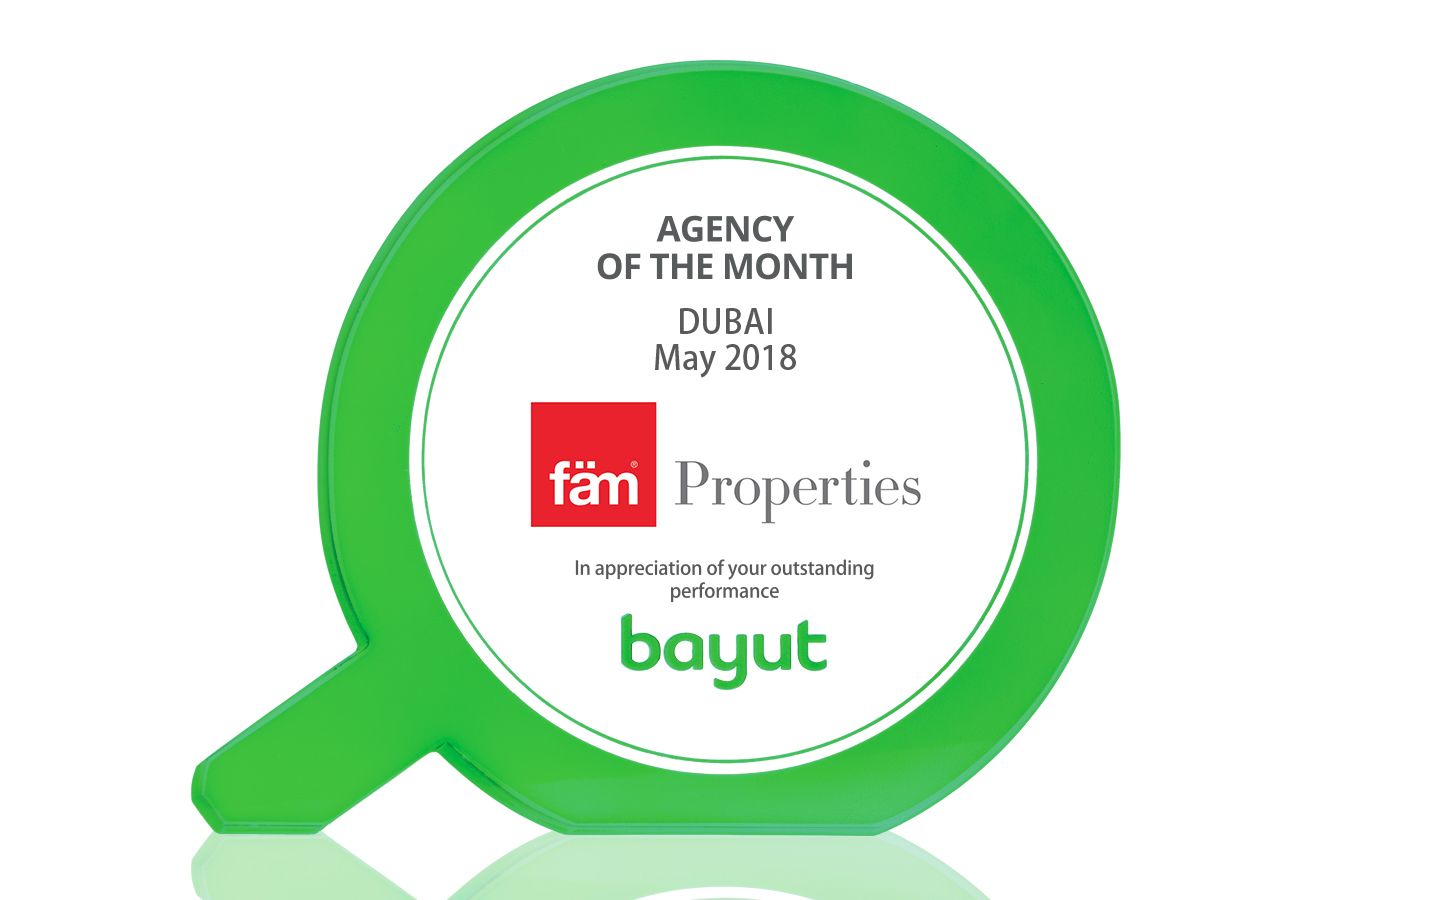 Bayut agency of the month: fam properties